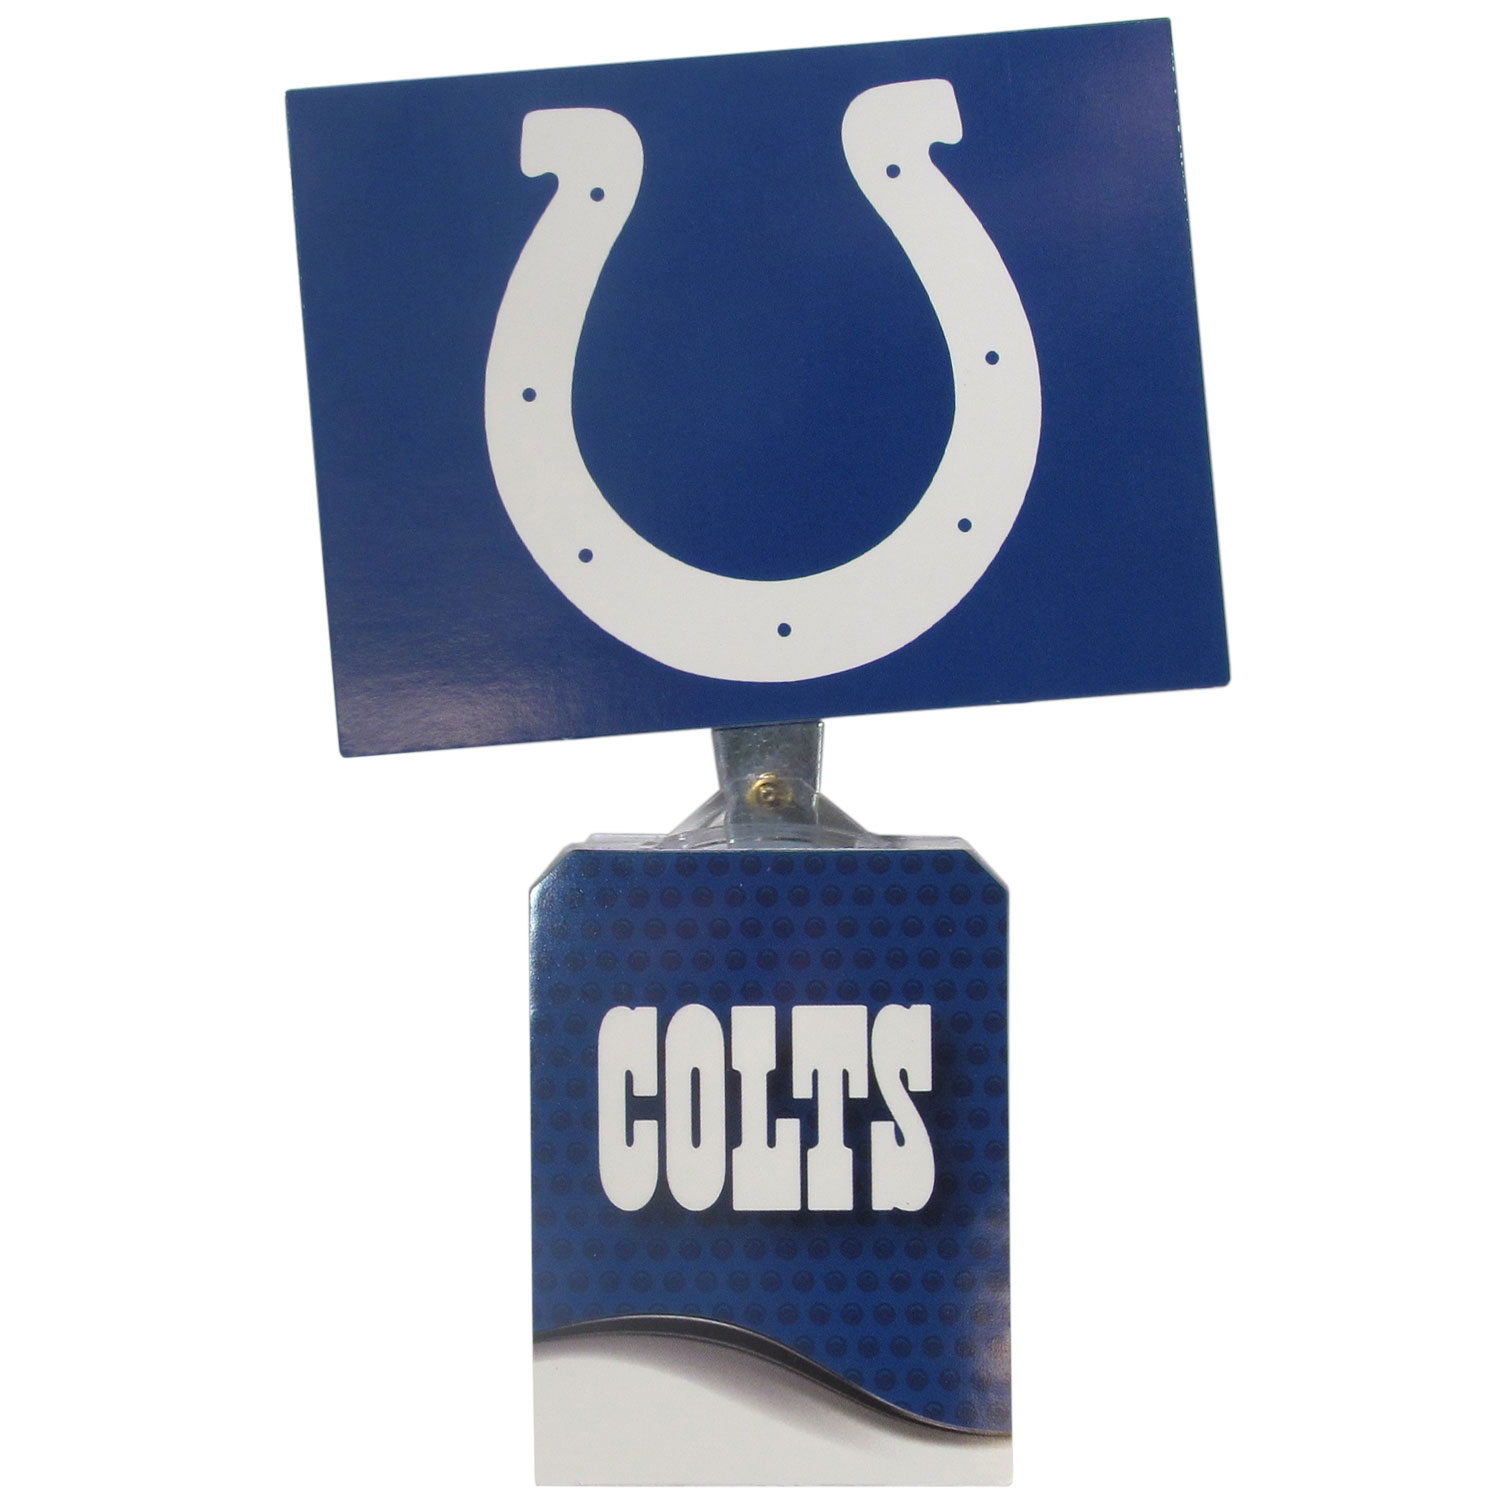 Indianapolis Colts Solar Flags - Get pumped up on the way to game with Siskiyou's Chicago Bears Indianapolis Colts Solar Flag that mounts to your dashboard or window. The in-motion solar flag also doubles as decoration for your tailgate or homegate! The base of the flag is 3 inches tall and the flag is 4 inches making the entire in-motion solar flag stand at 7 inches tall. Keep your spirit moving with your favorite team's Solar Flag.